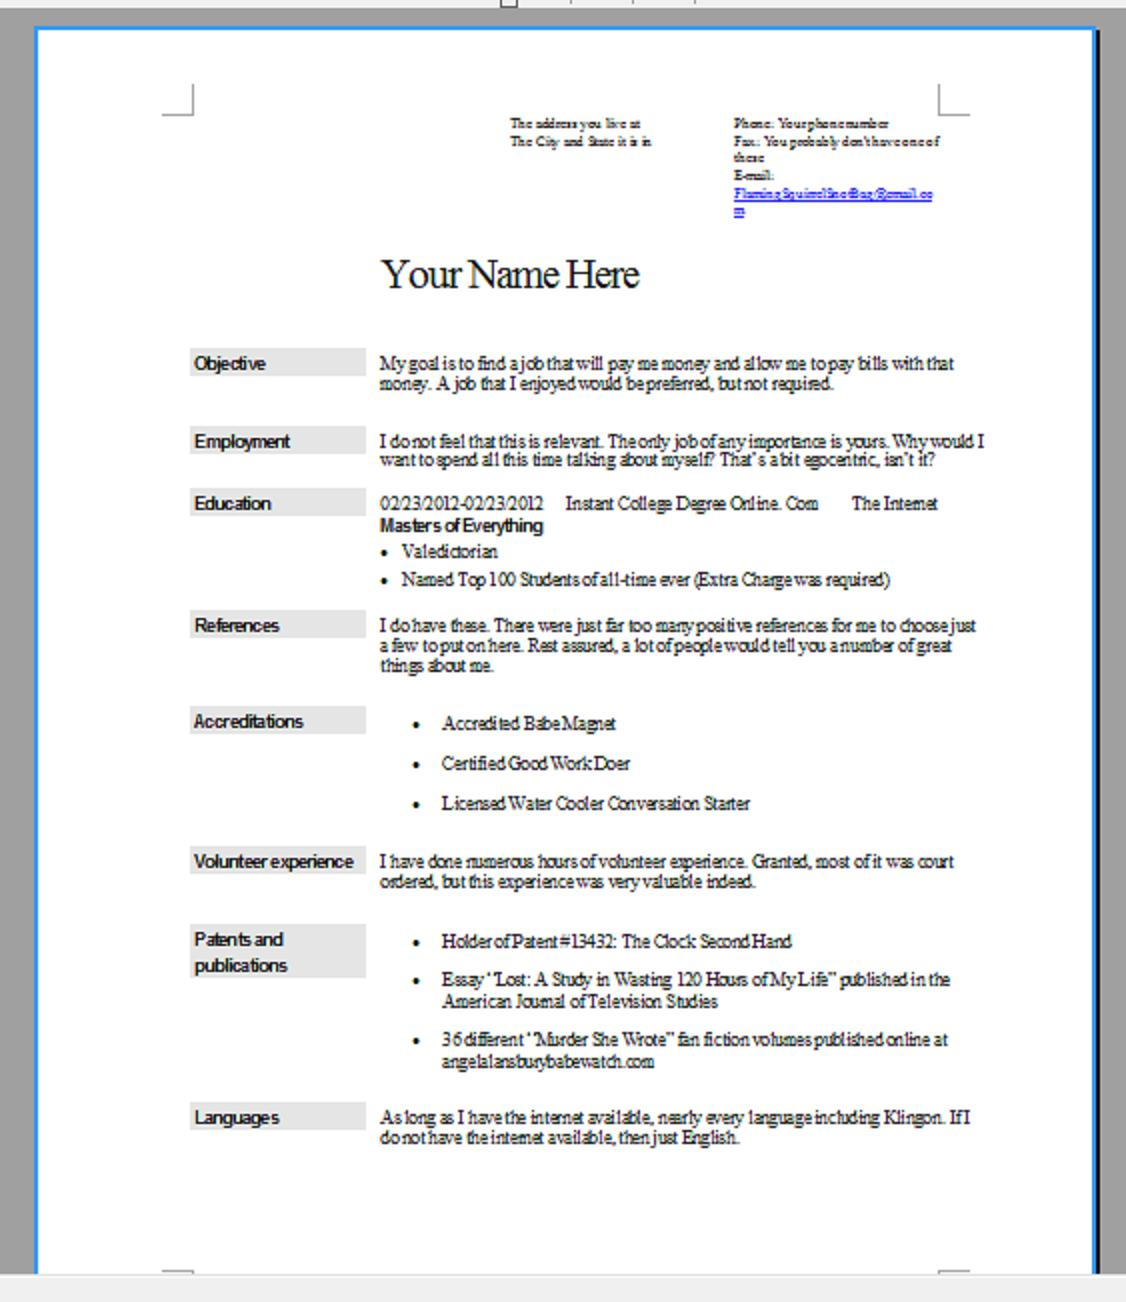 How To Do Resumes For A Job 28 Images How To Do A Resume For A